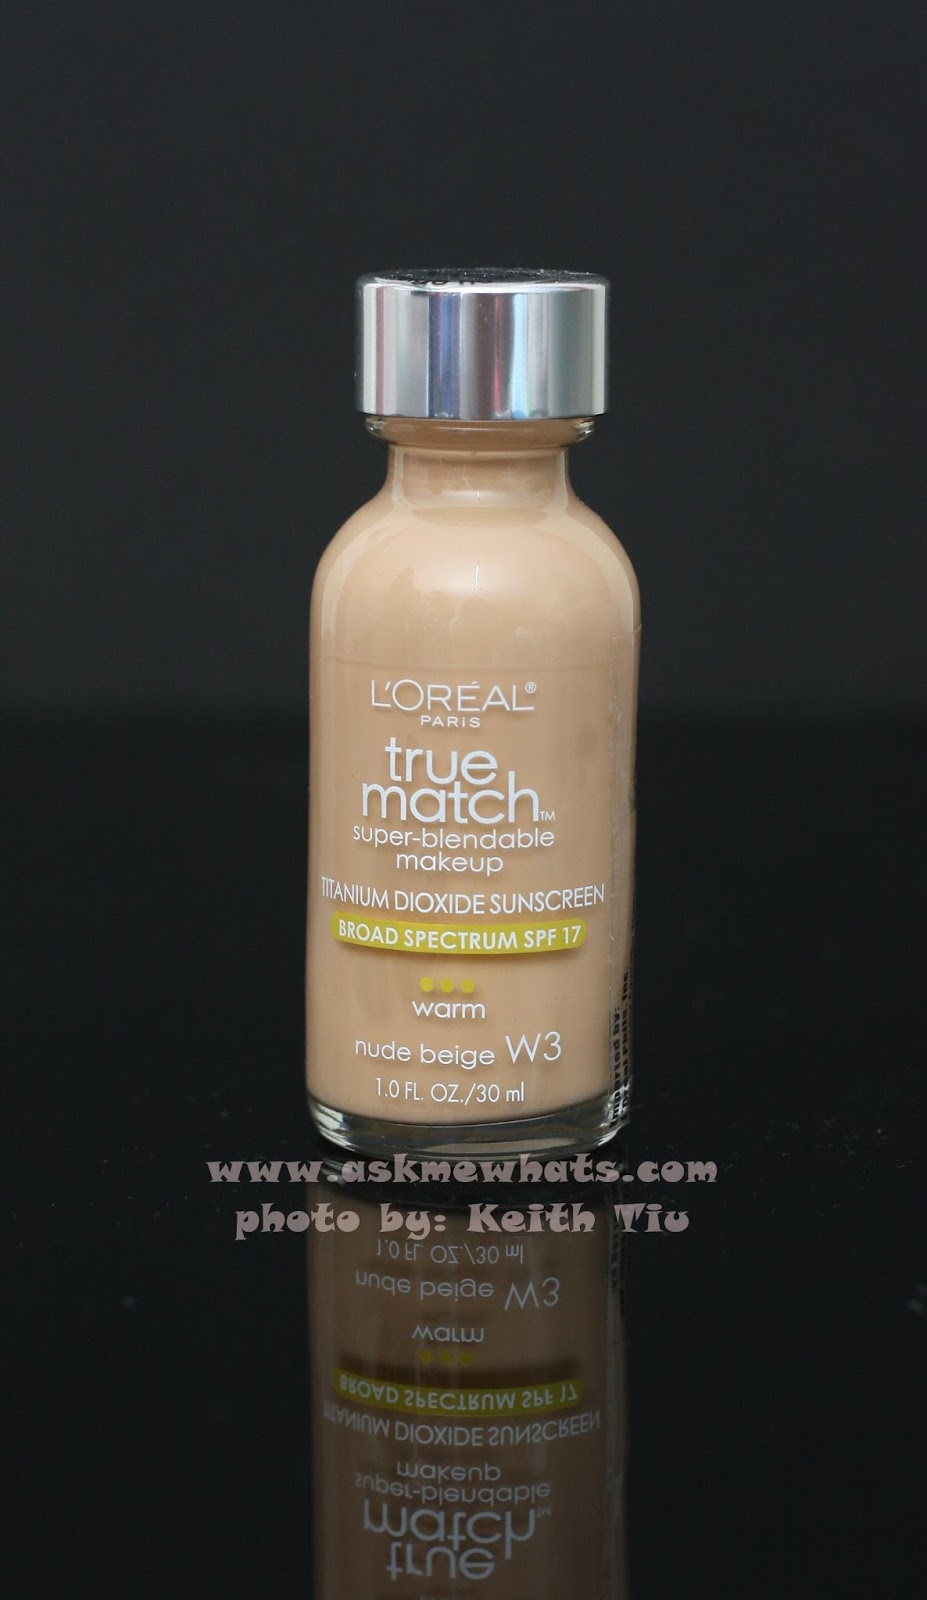 After more than 2 weeks of usage, here are my thoughts on L'Oreal's newest foundation which they hailed as a super-blendable makeup!